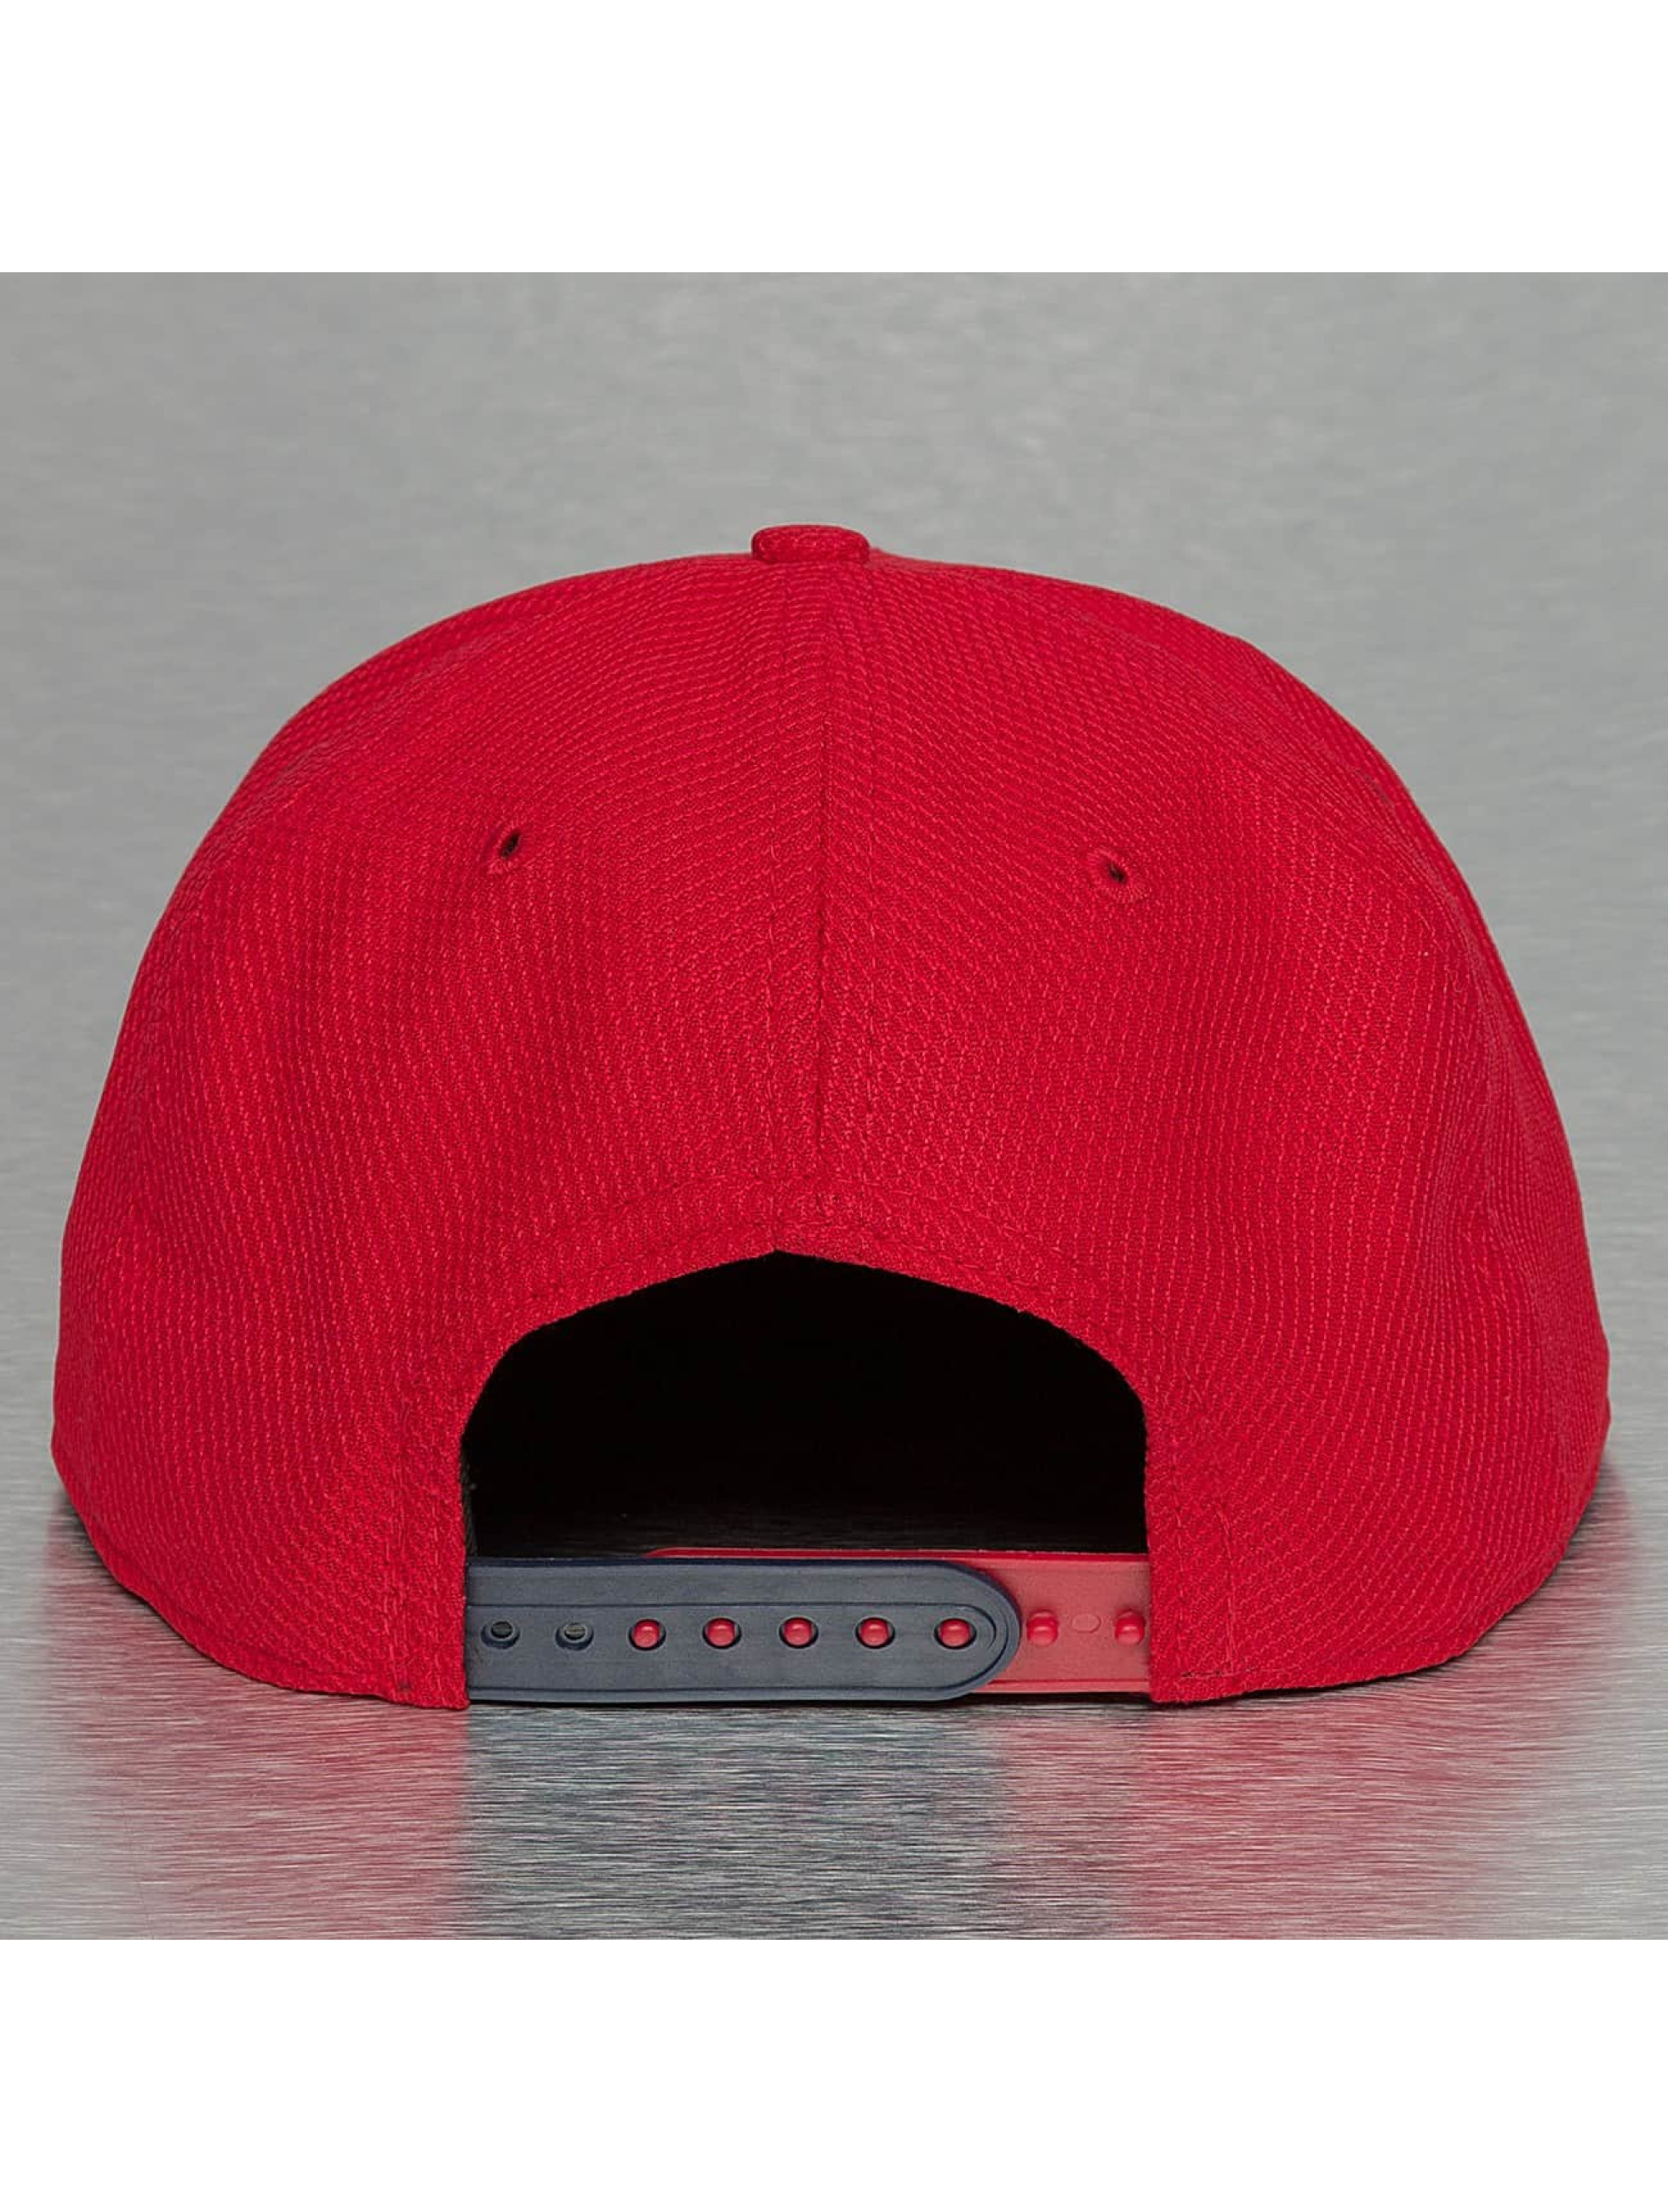 New Era Casquette Snapback & Strapback Bas Reverse Boston Red Sox 9Fifty rouge